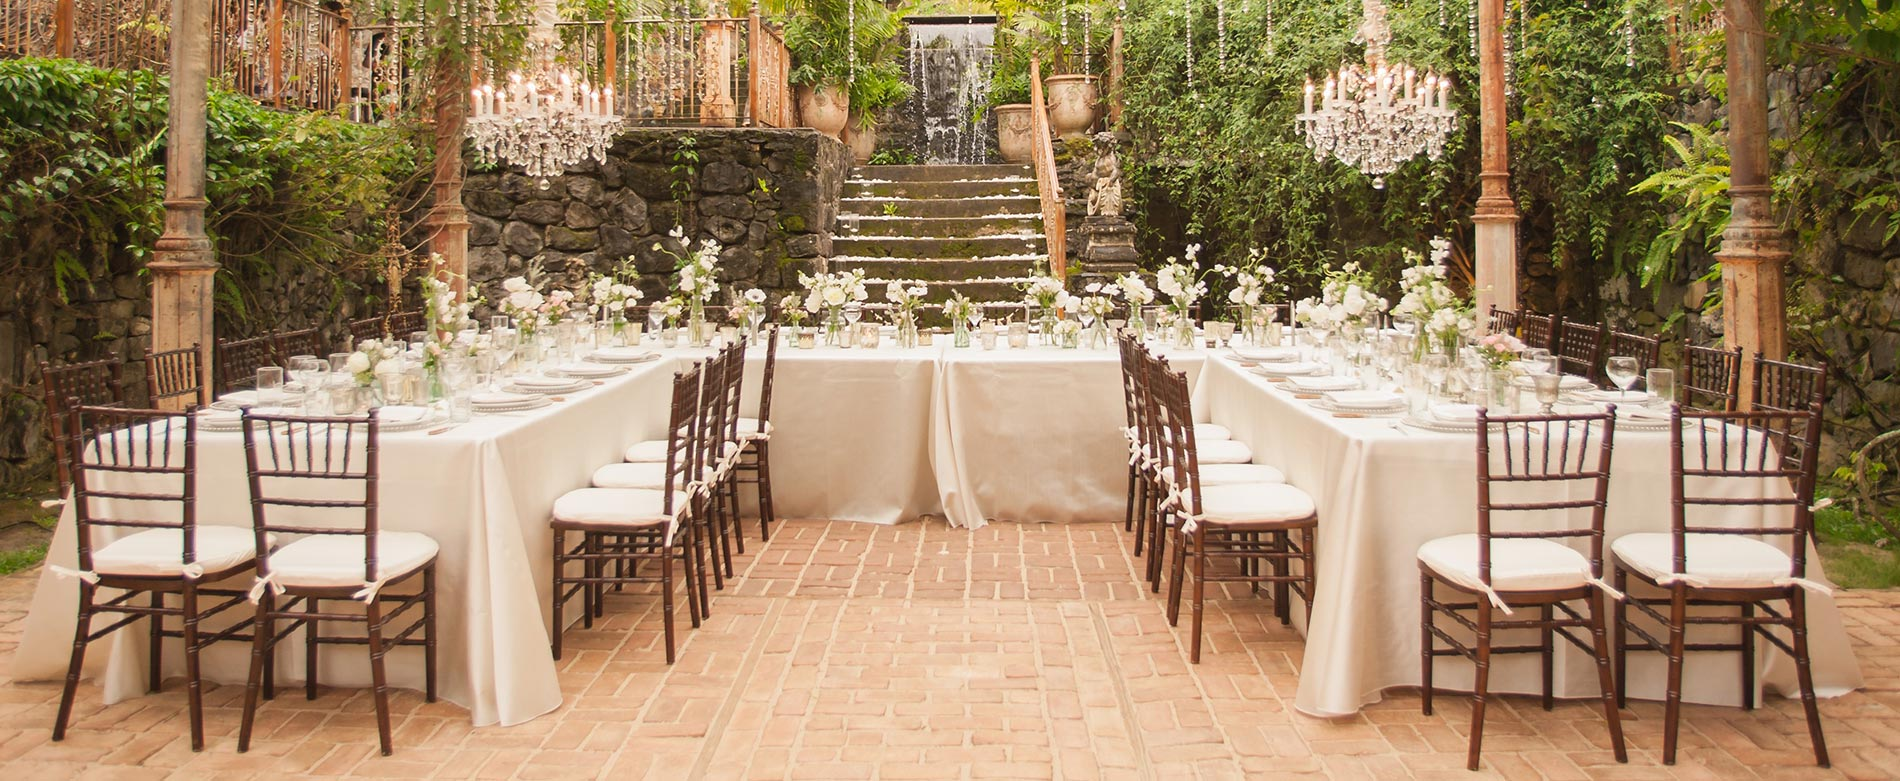 Four Things You Should Consider Before Booking Your Wedding Venue